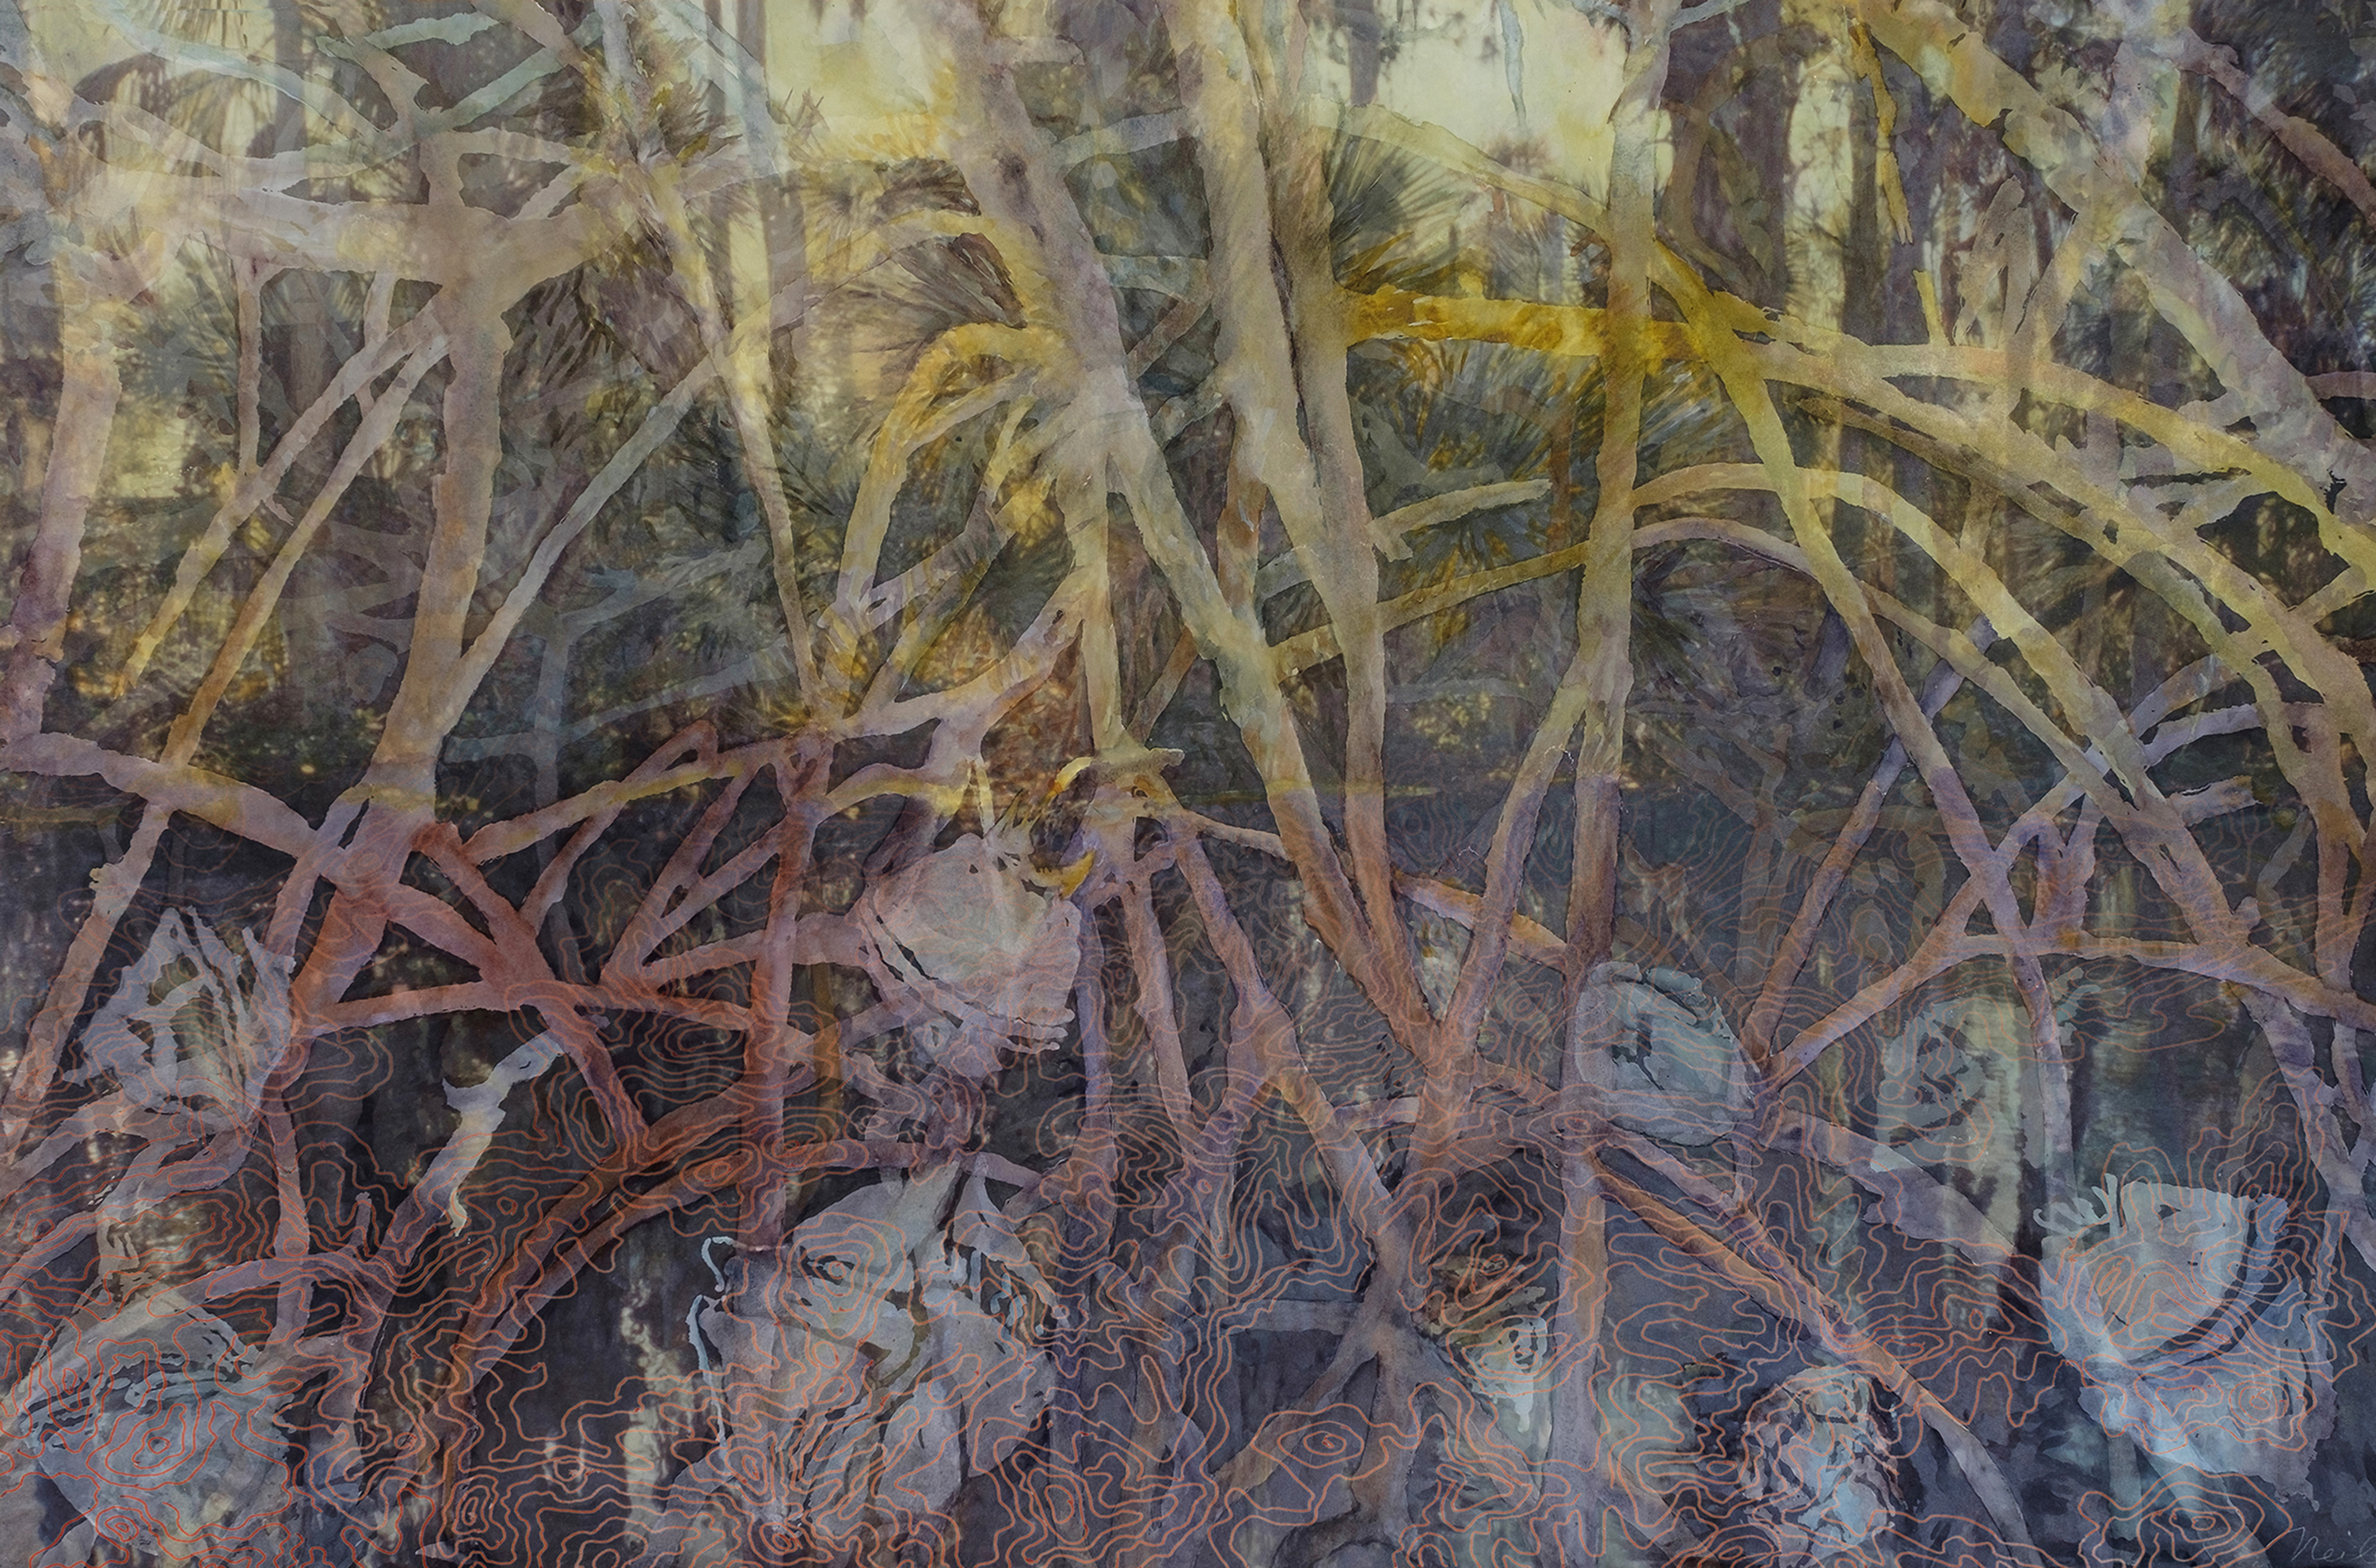 """Mangrove Forest, 2017, Watercolor, archival pigment print on paper, framing plexiglas, 31"""" x 44.75"""""""